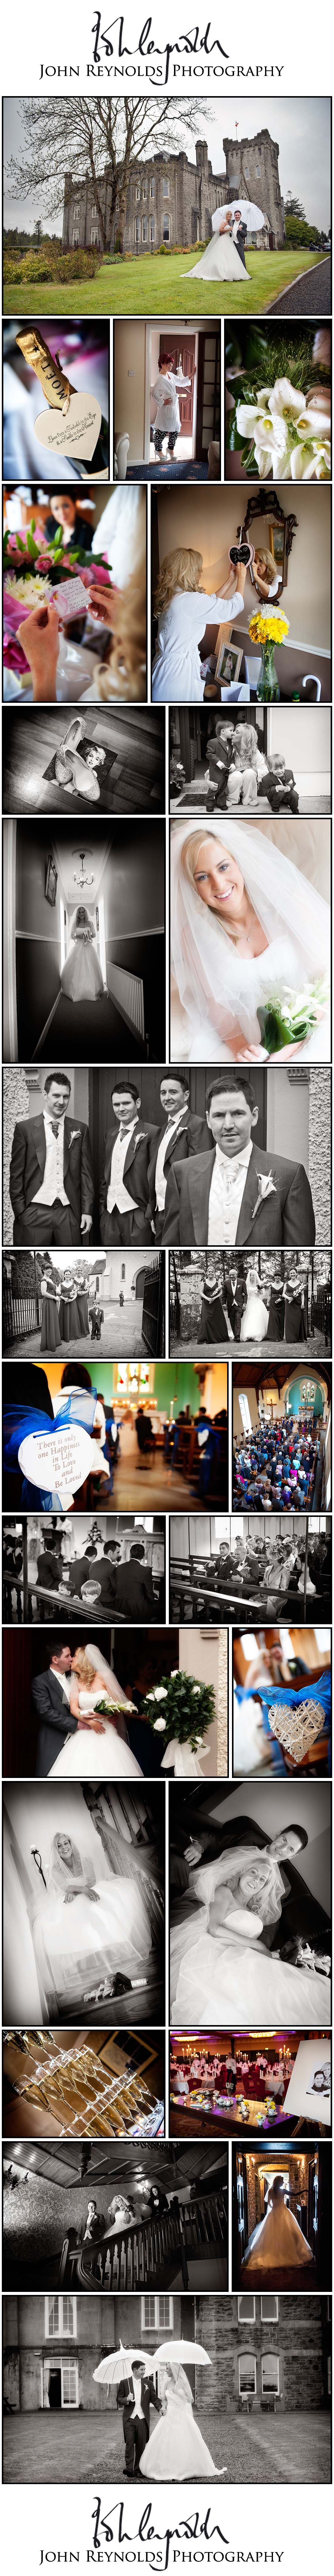 Blog Collage-Edel & Barry